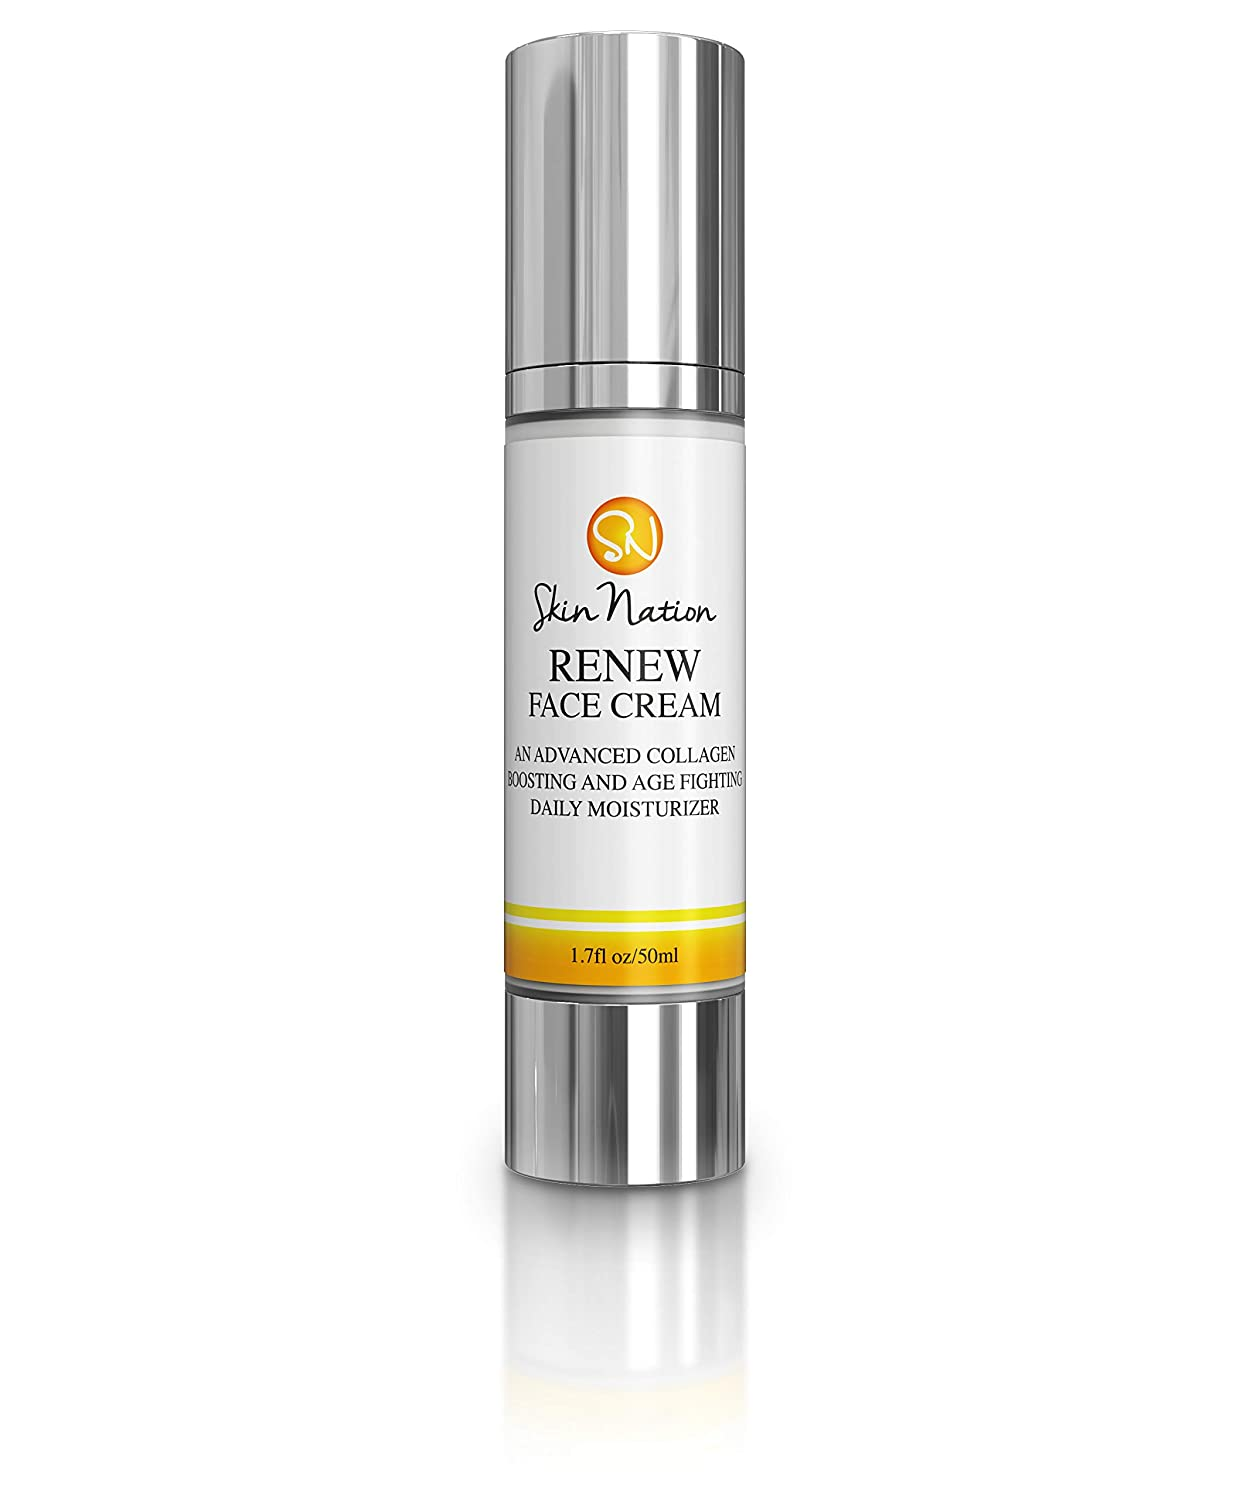 Renew Face Cream Daily Moisturizer   Anti Aging Cream for Face, Anti Wrinkle, Collagen Peptides   with Organic Natural Ingredients, Aloe Vera, Coconut Oil, Vitamin E   Skin Nation by Michelle Stafford